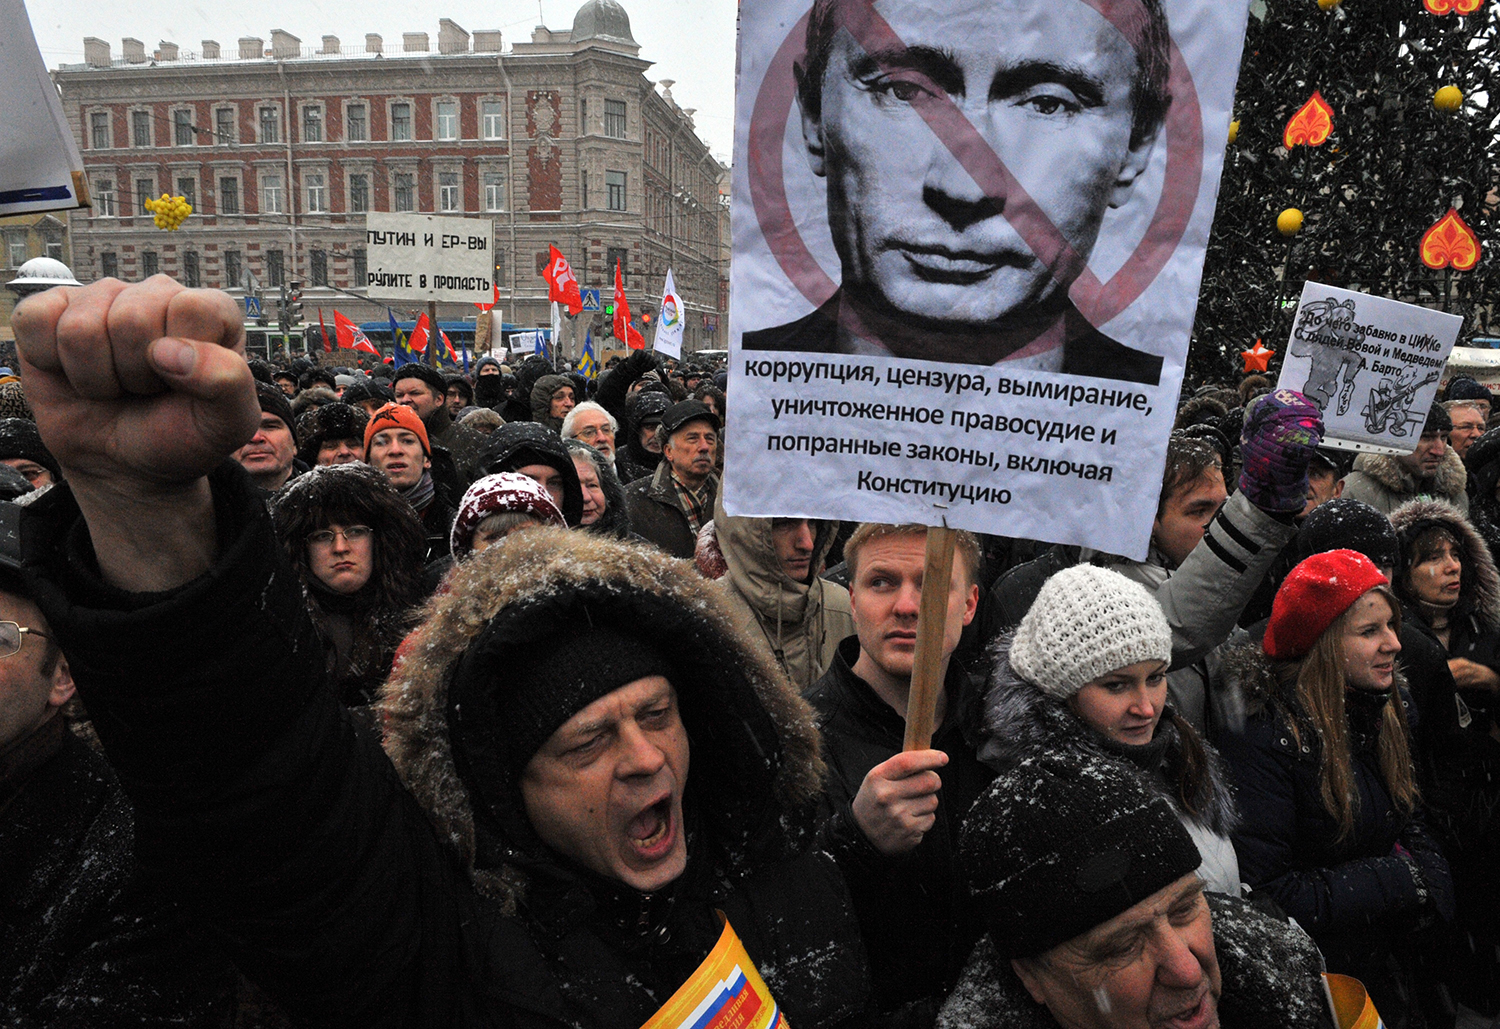 A protester holds a poster of Russian Prime Minister Vladimir Putin during a rally in St. Petersburg in 2011.